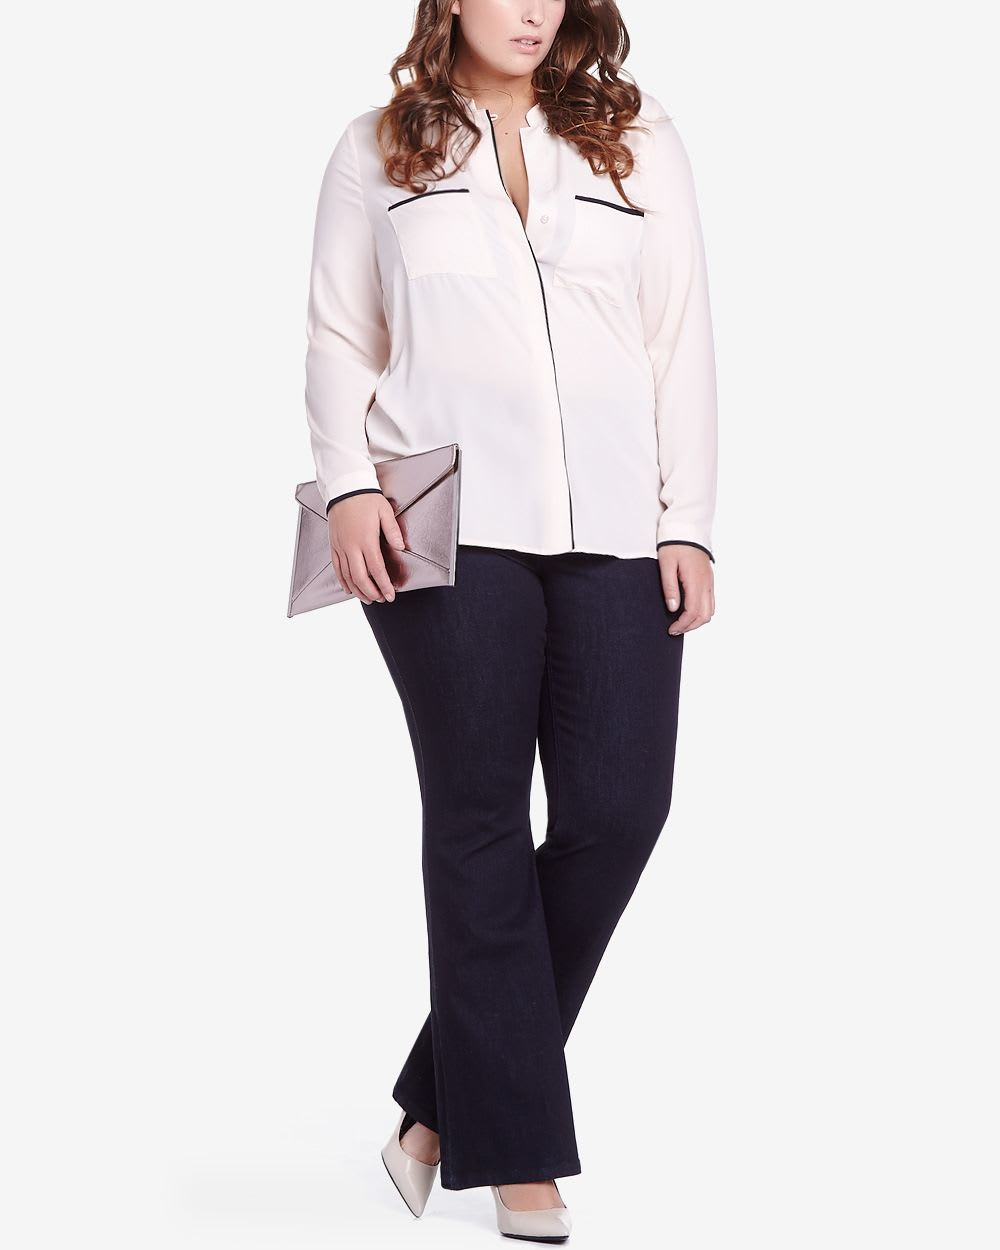 Shop sashimicraft.ga for the newest additions to plus size pants! From wide leg trousers to lace up flare pants, we have all of your plus size pants needs!